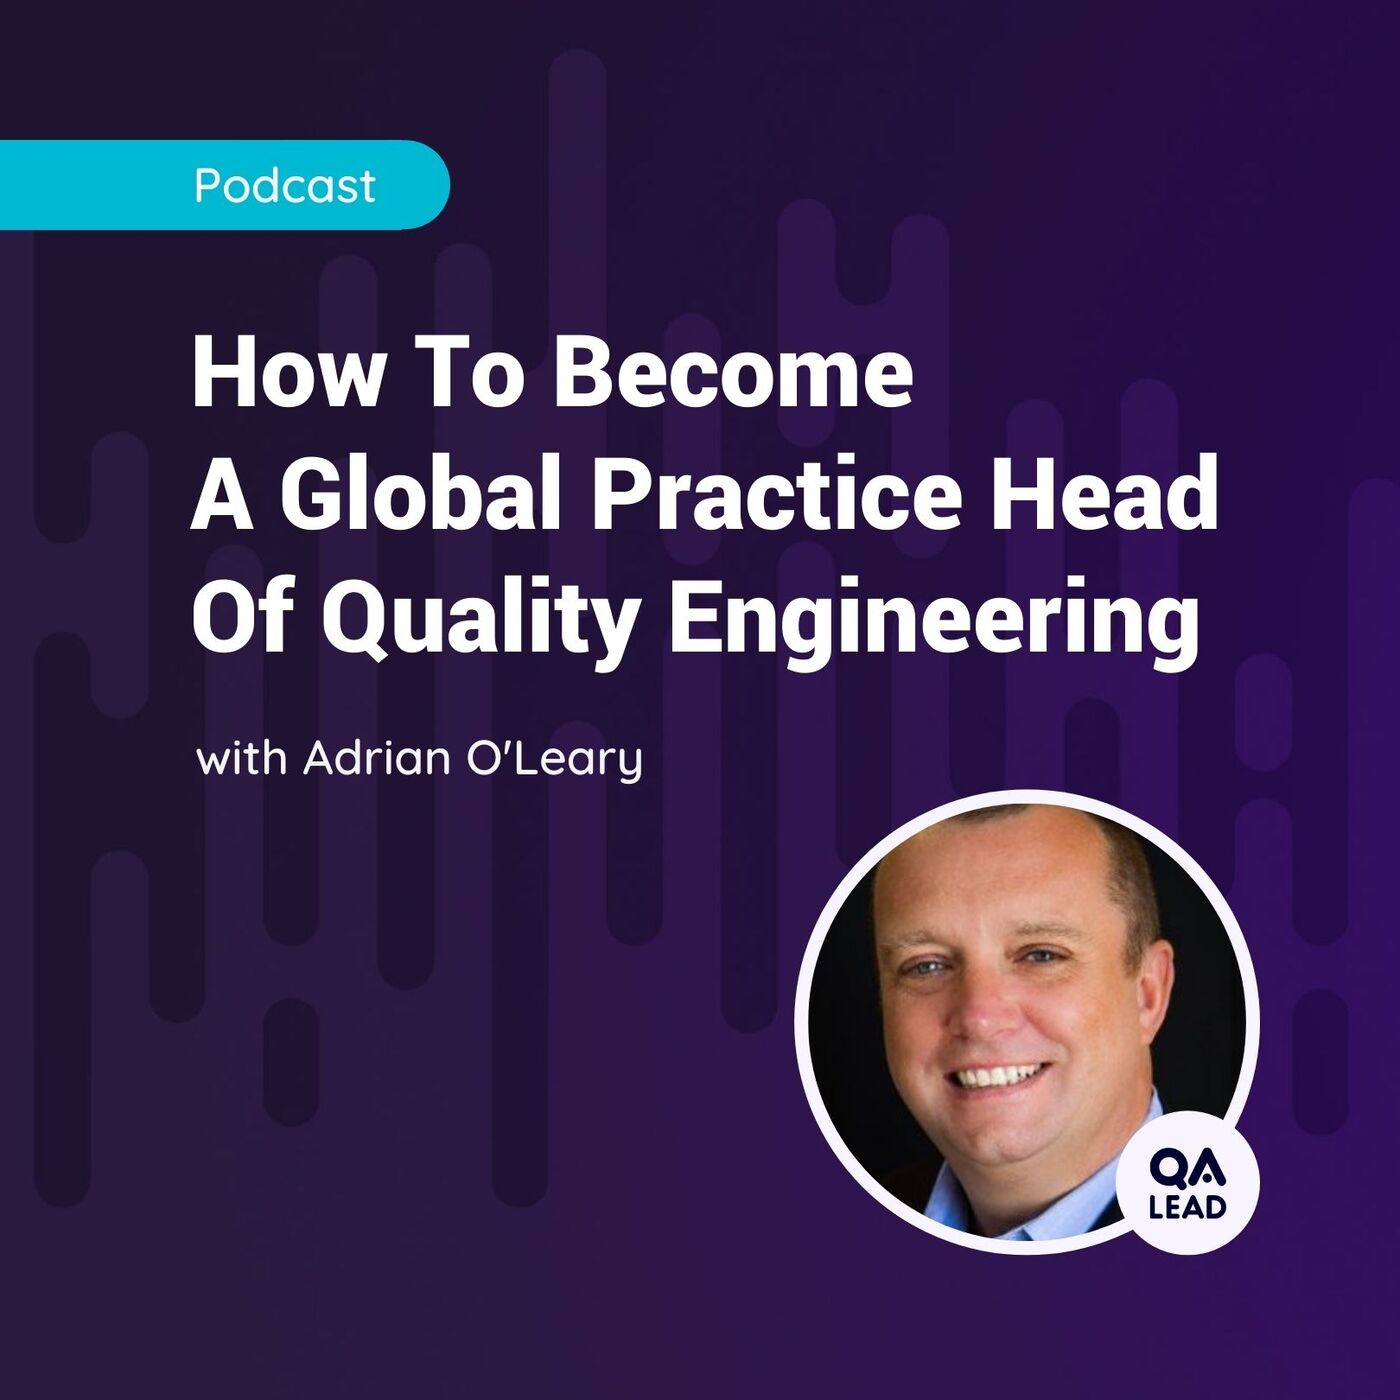 How To Become A Global Practice Head Of Quality Engineering (with Adrian O'Leary from NIIT Technologies Limited)